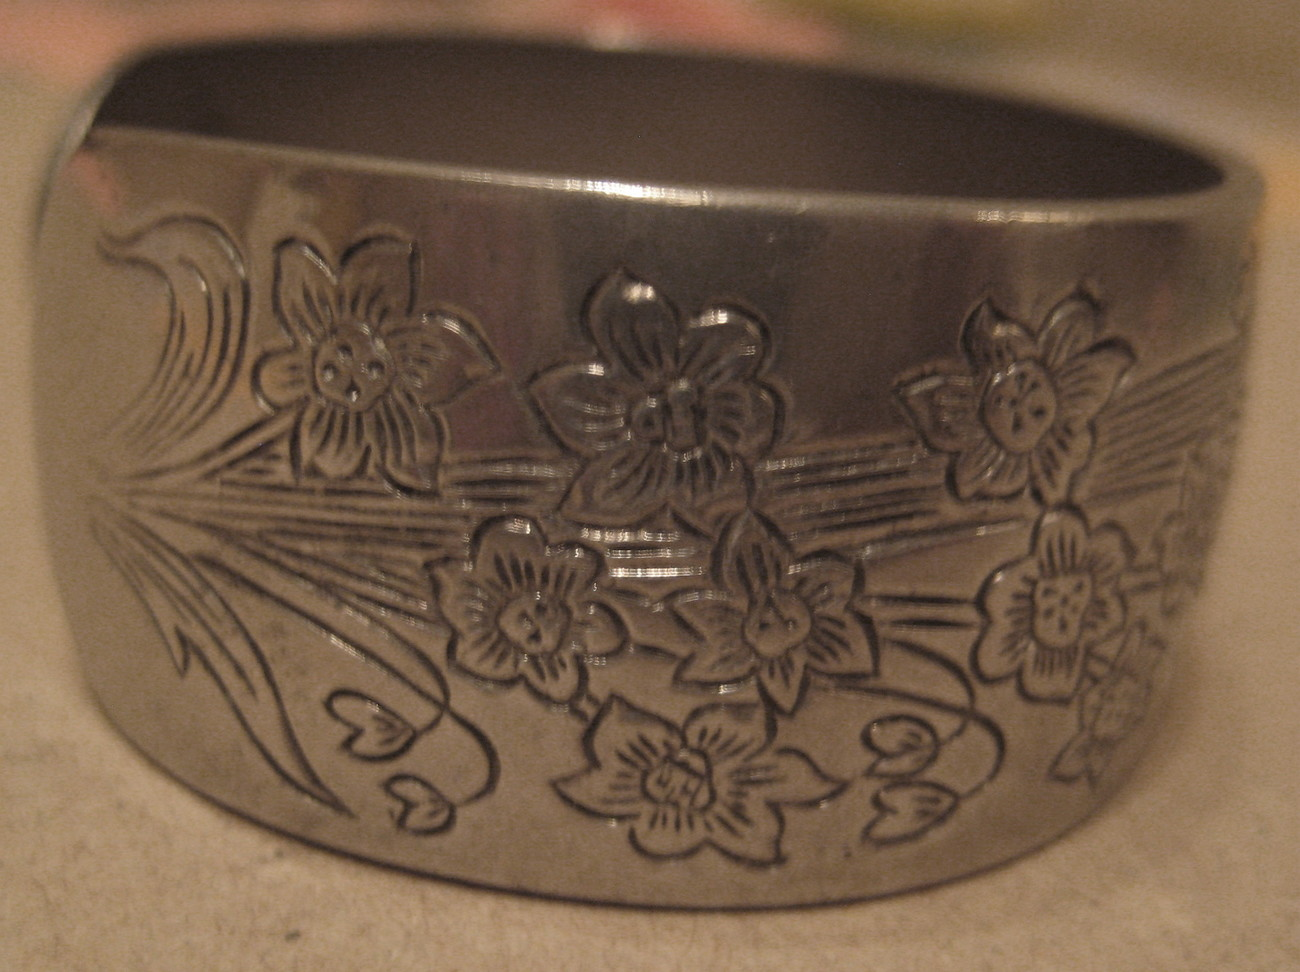 VINTAGE KIRK PEWTER CUFF BRACELET - 70'S NARCISSUS PATTERN # 900-12  GOOD COND